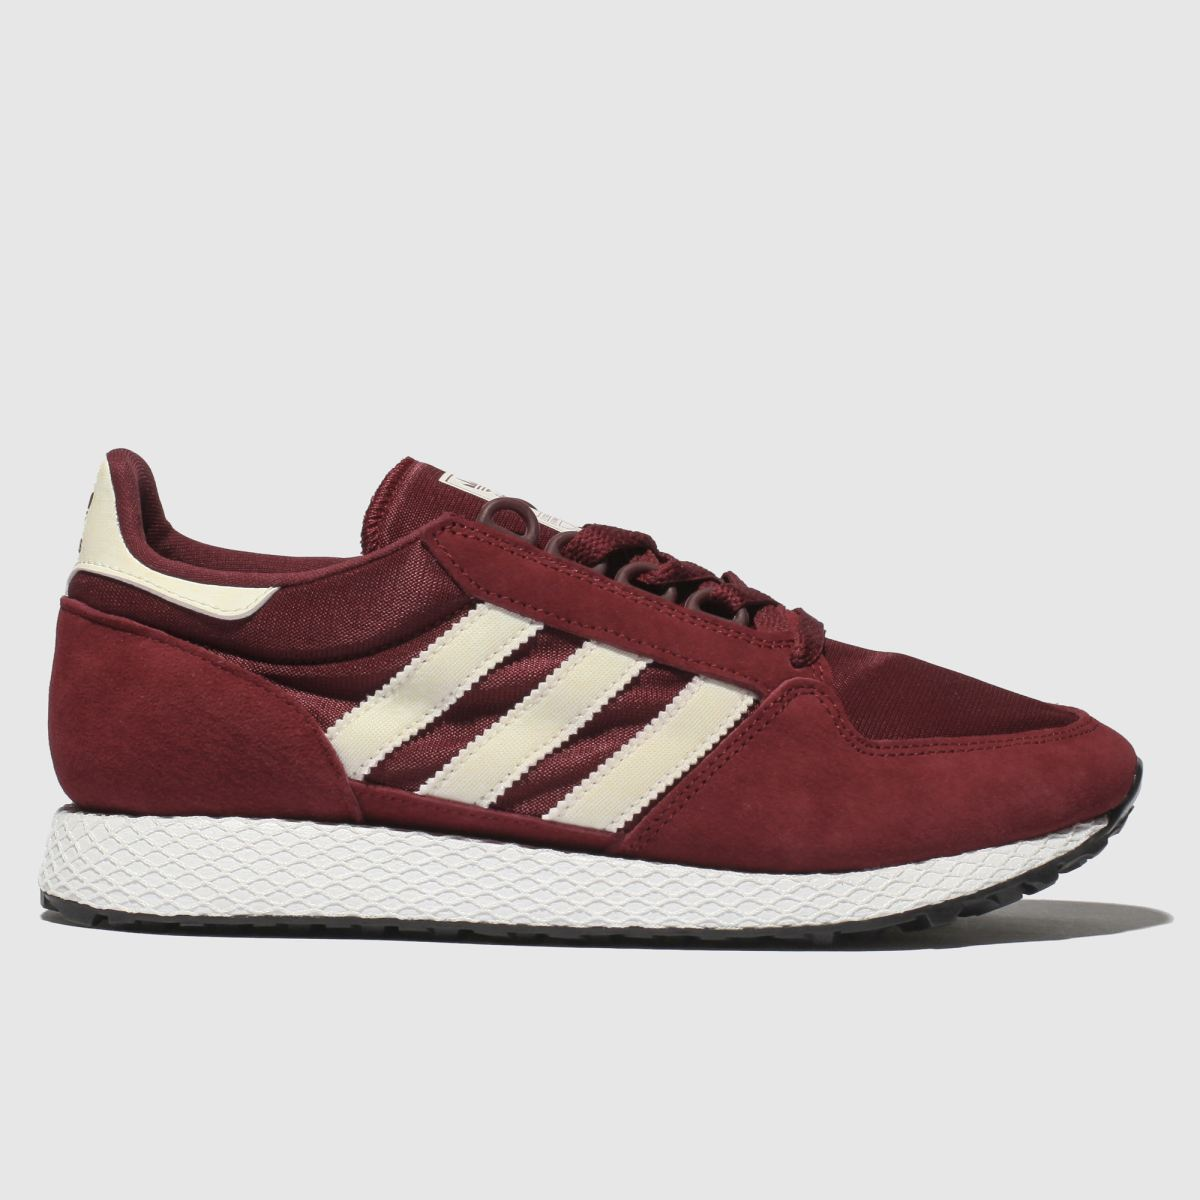 Adidas Burgundy Forest Grove Trainers